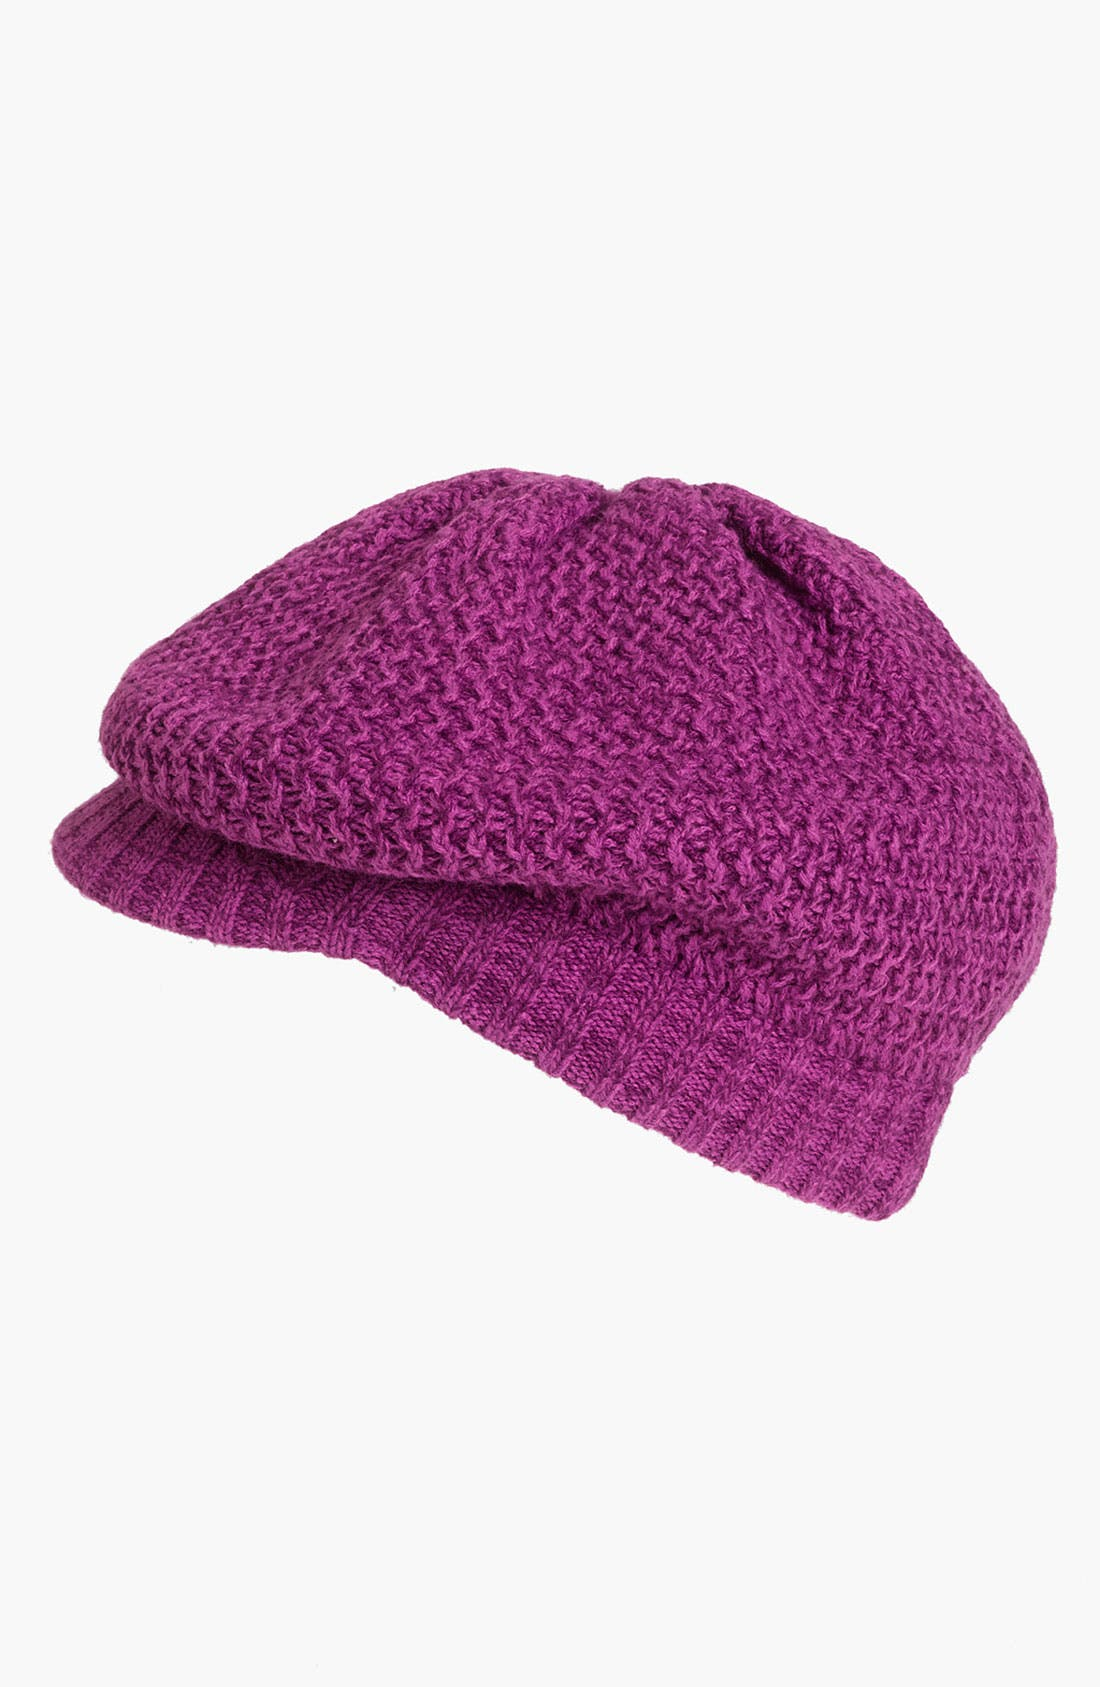 Alternate Image 1 Selected - Echo Marled Stitch Newsboy Hat